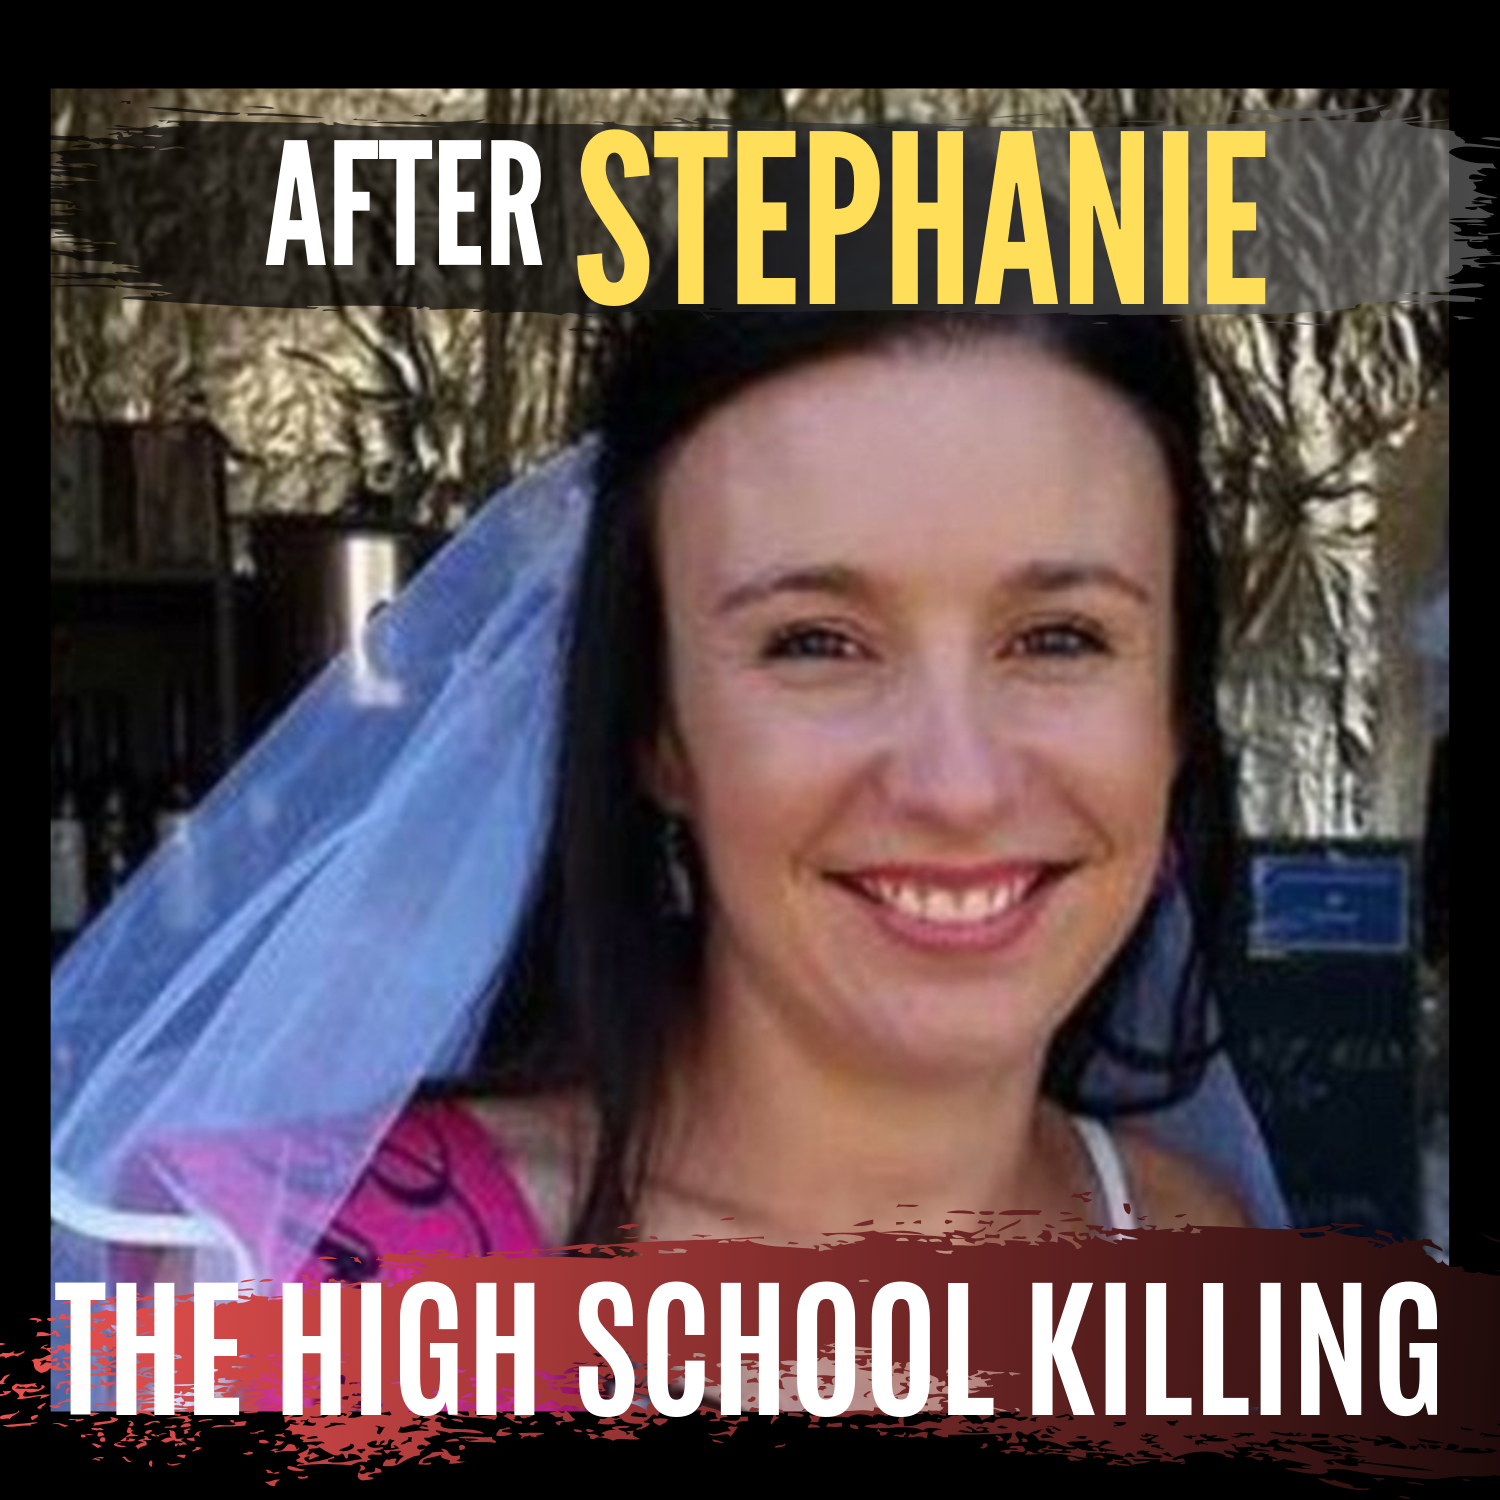 After Stephanie - murder in a country school